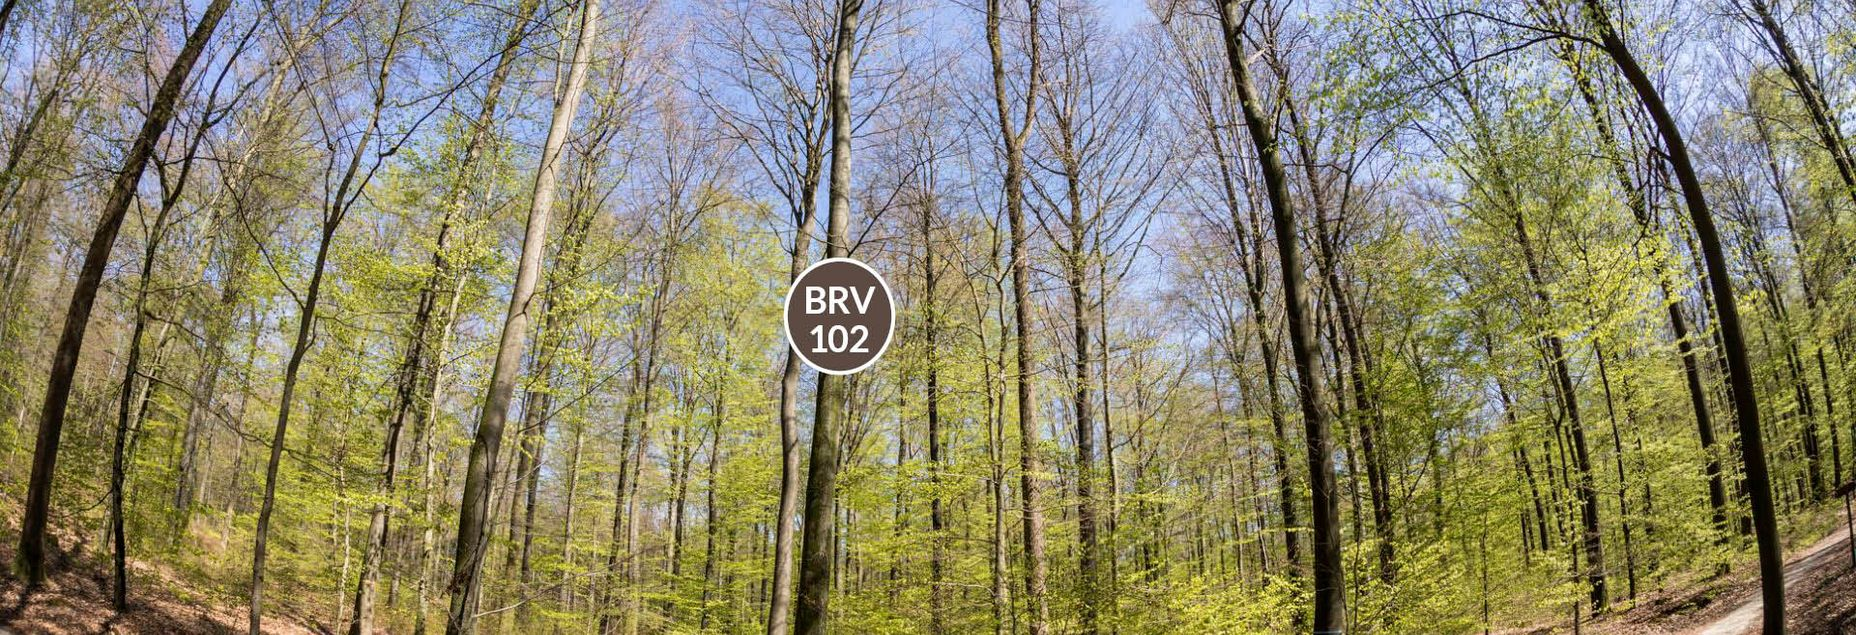 FriedWald-Onlineshop BRV 102